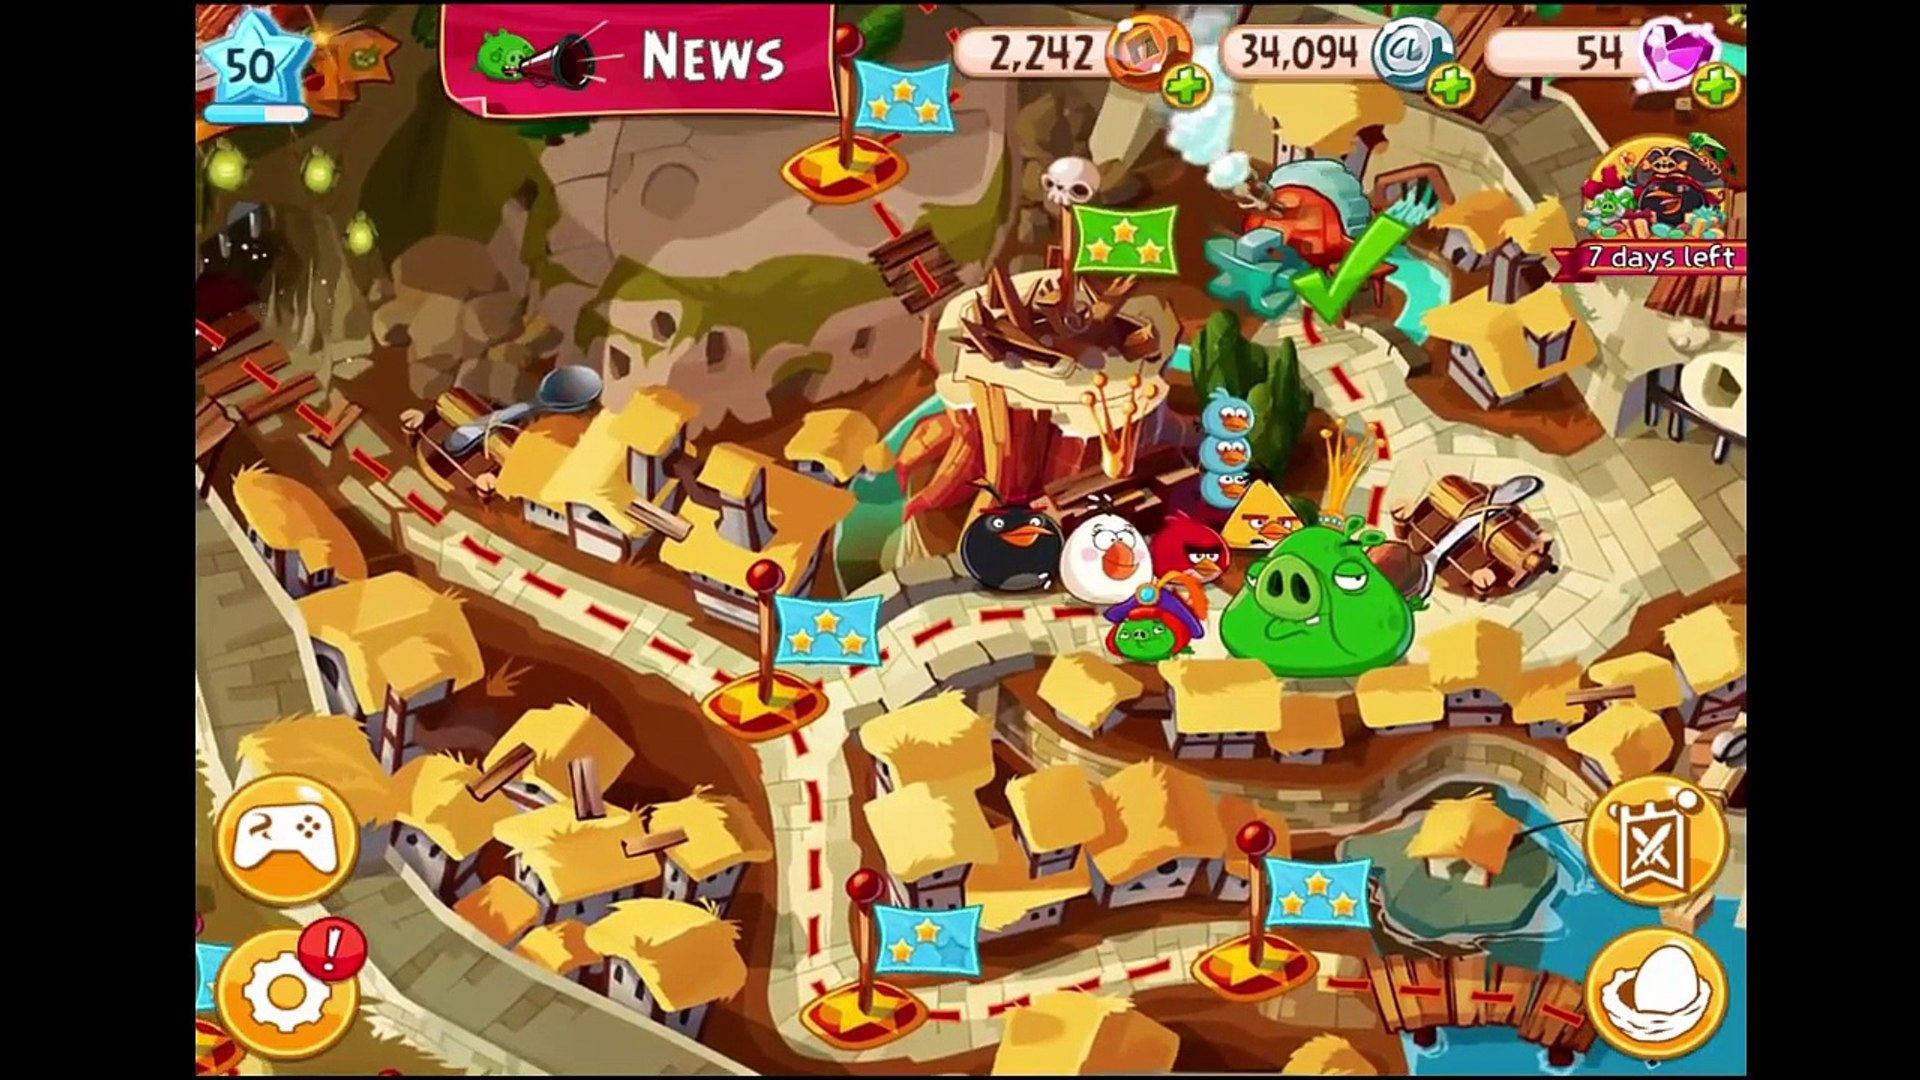 Angry Birds Epic: New Helms! Red, Chuck, & Bomb Vs. King Pigs Territory Gameplay